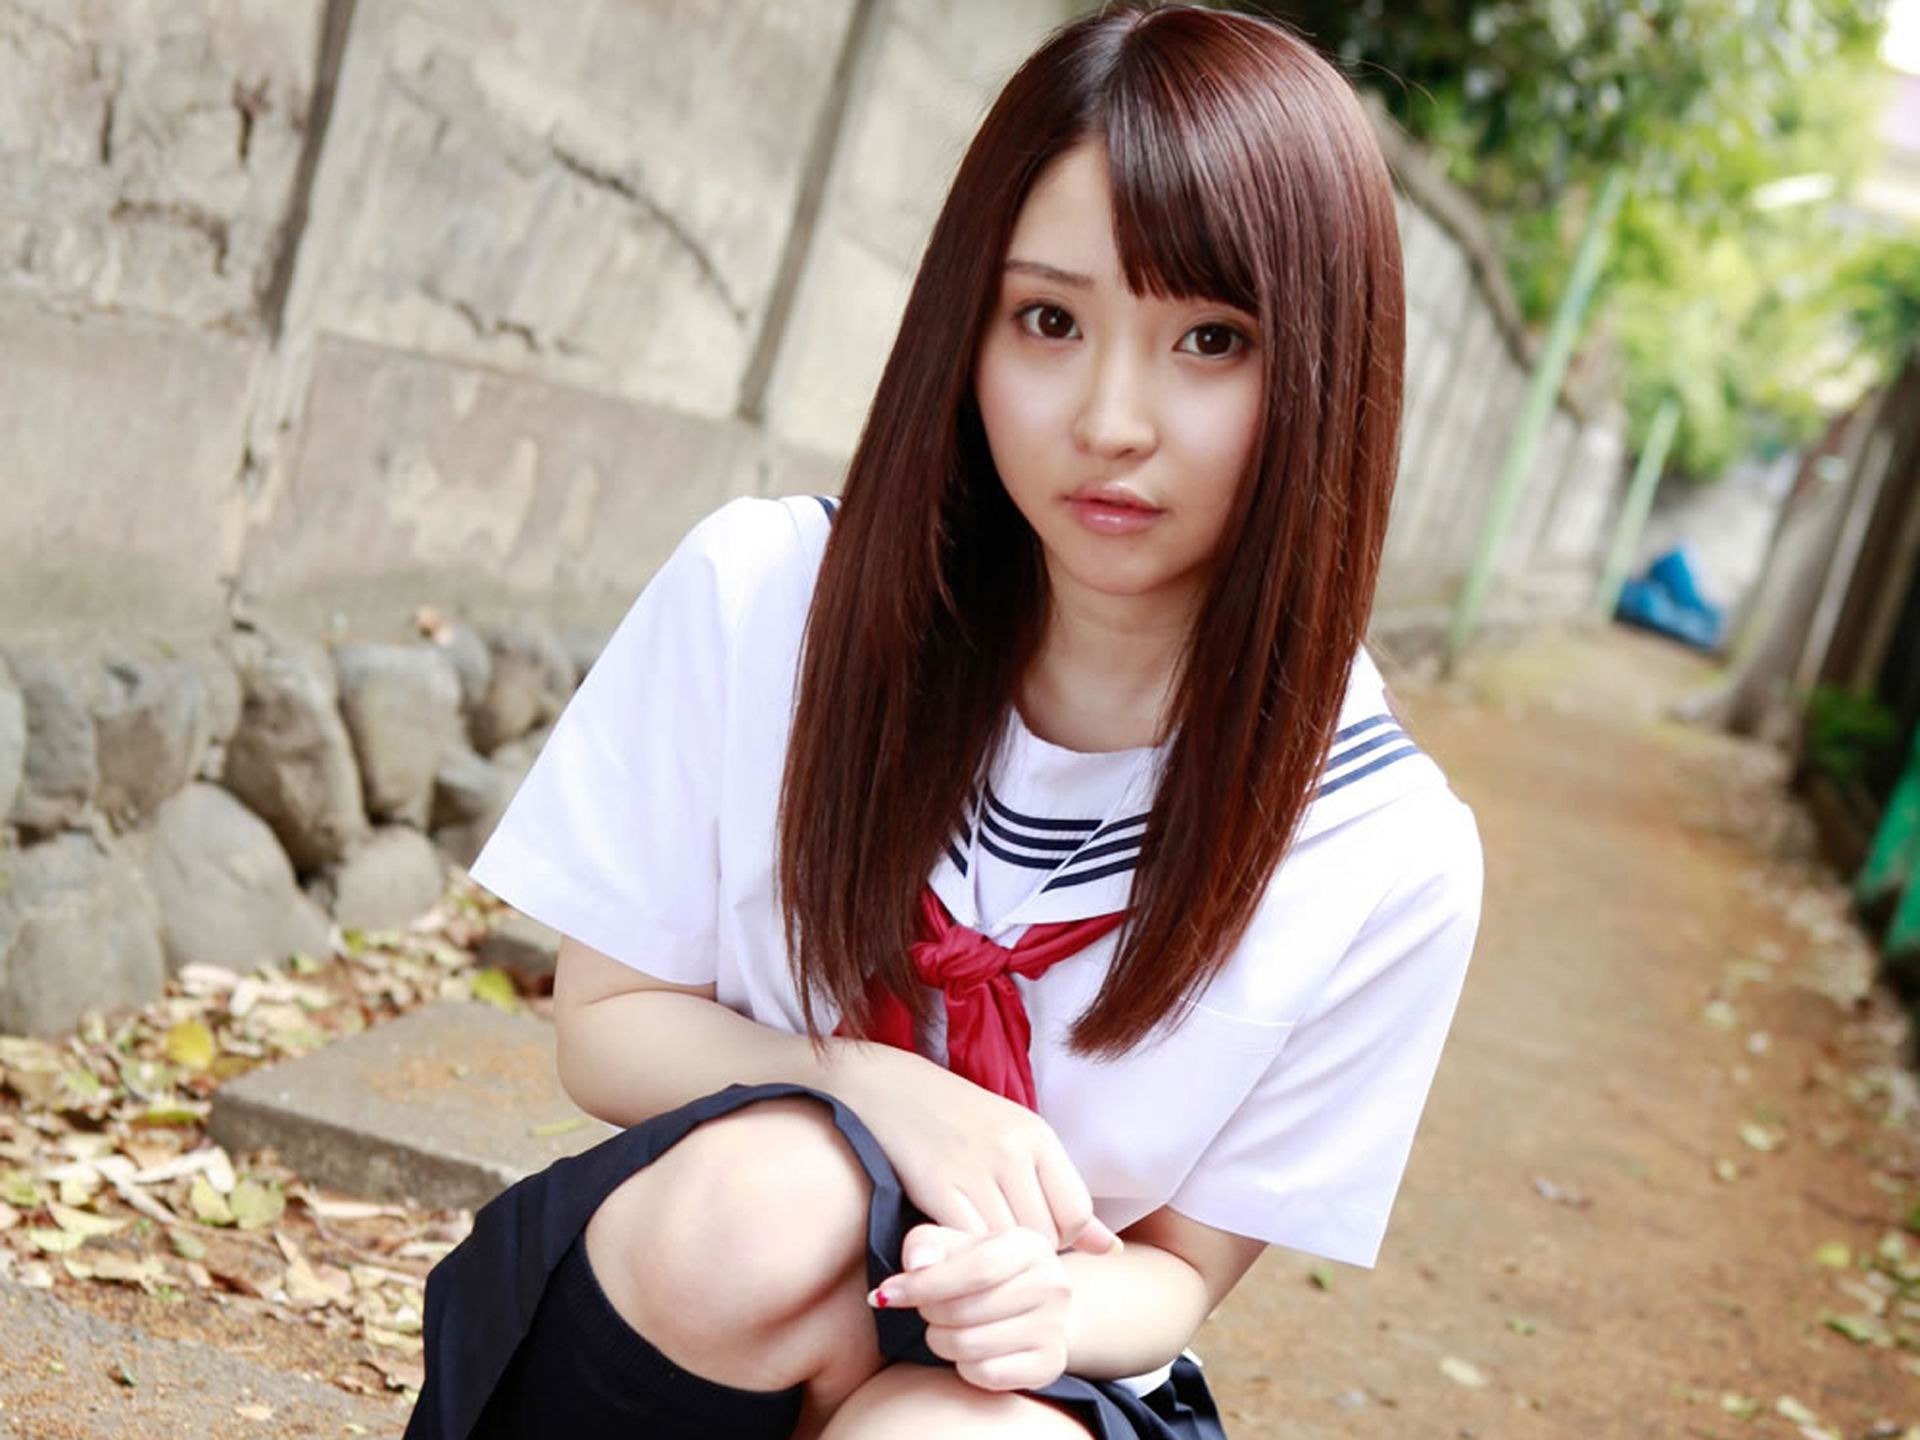 pure japanese school girl with the beat on the streets wallpaper 13